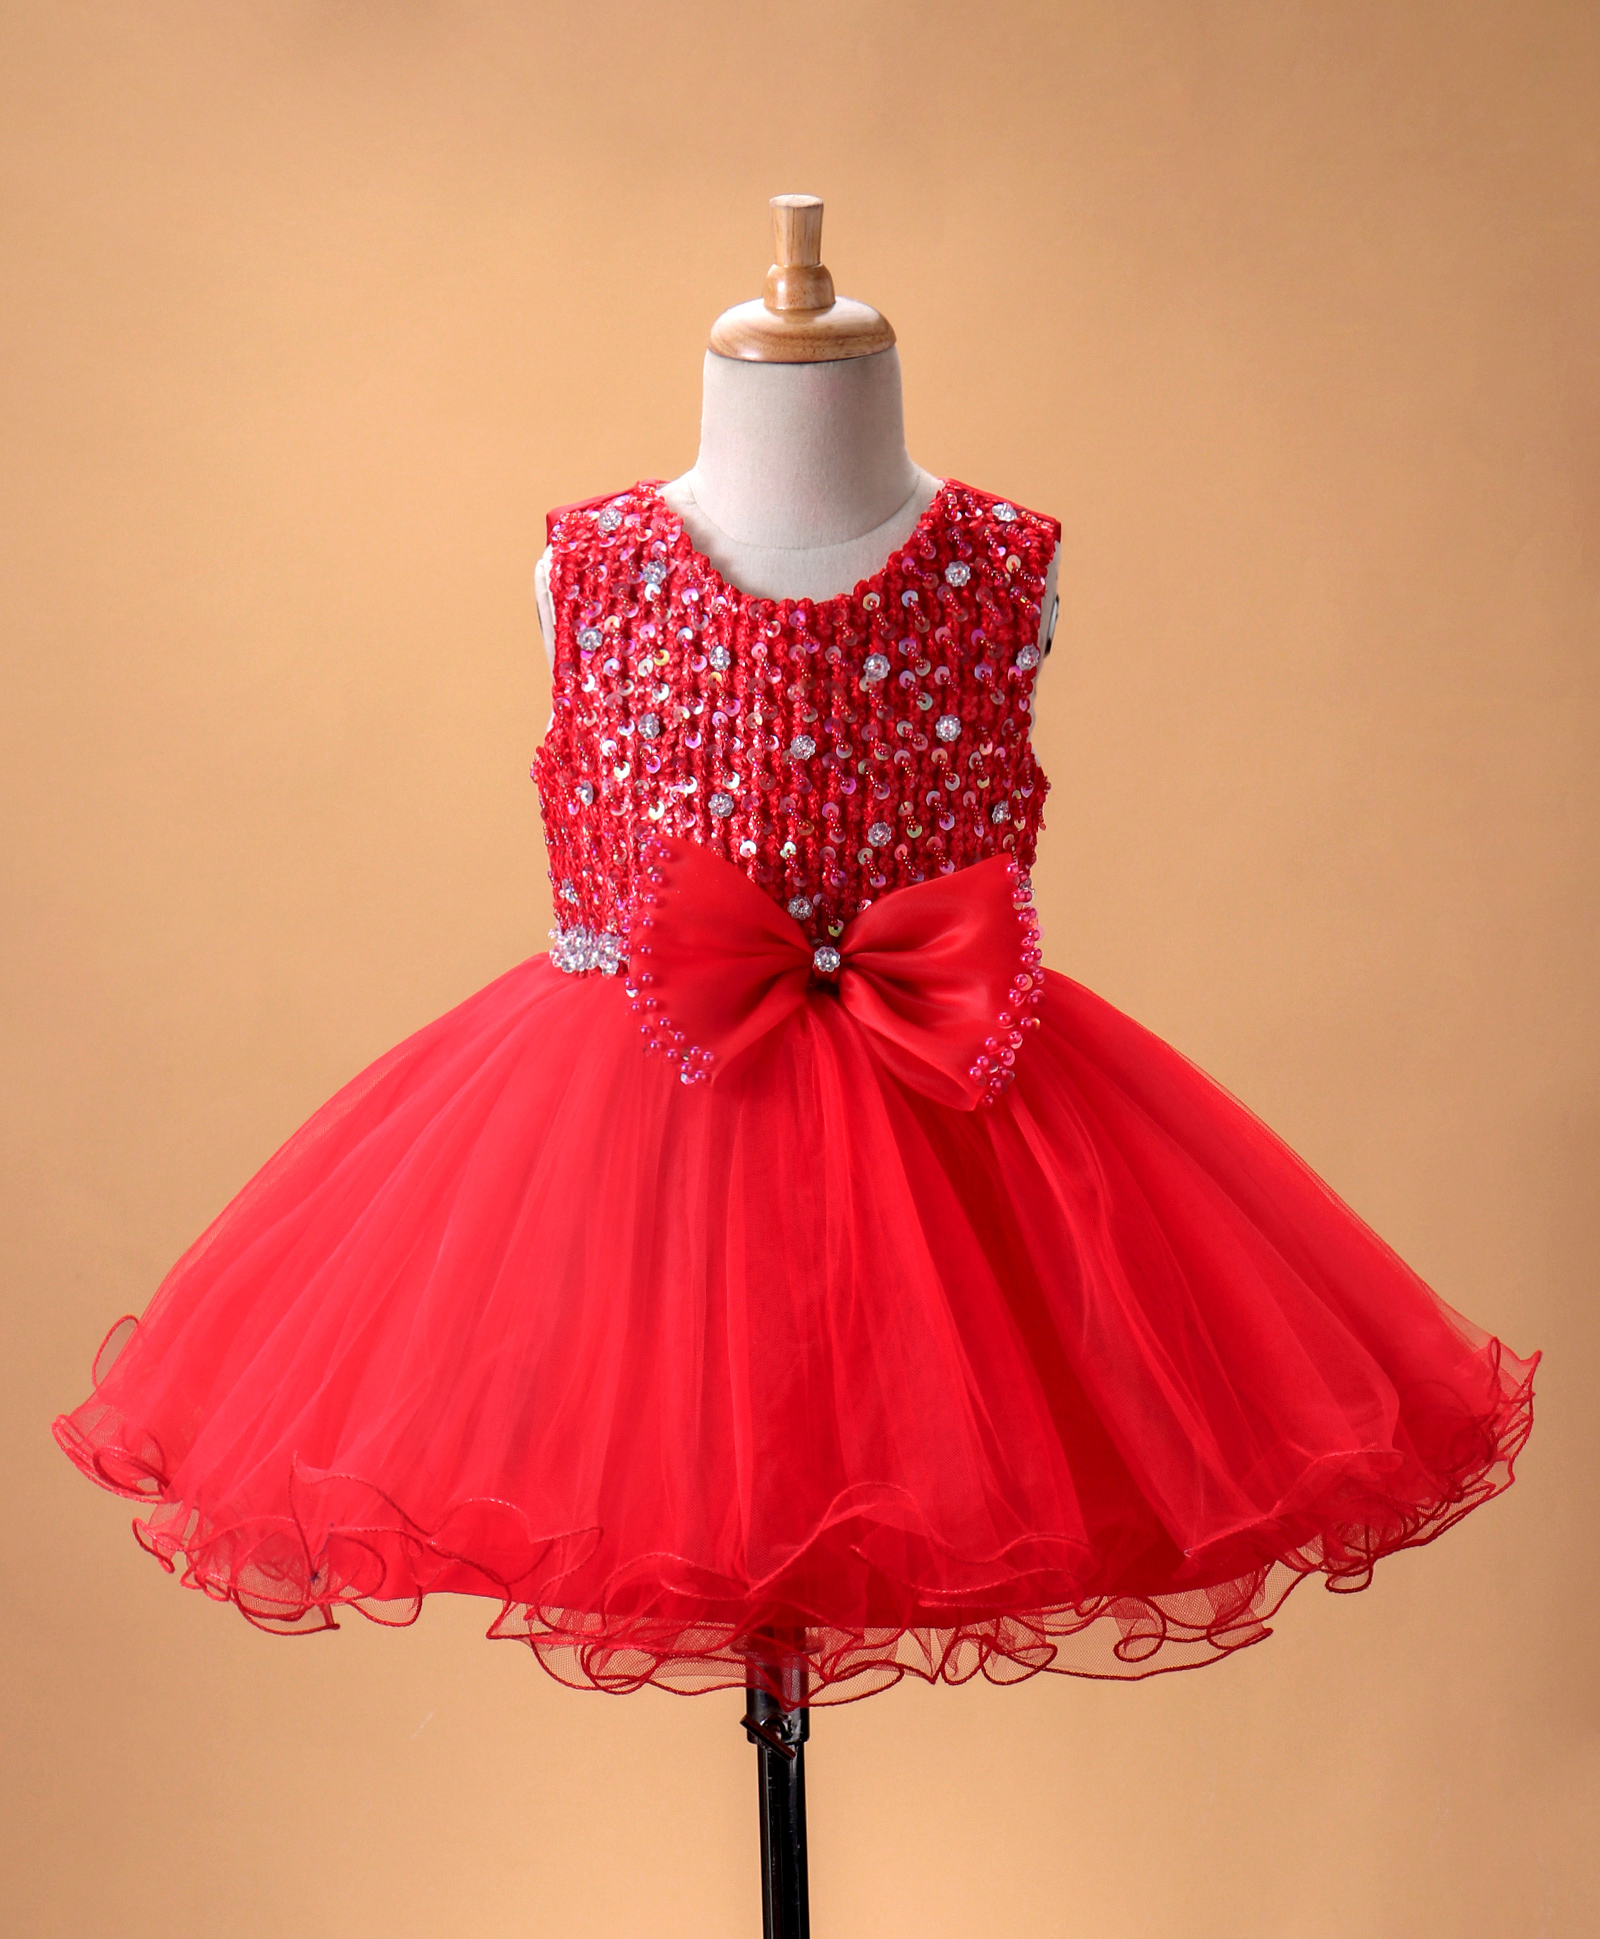 06fbf831f9 Buy Mark & Mia Sequin Embellished Dress With Bow Red for Girls (0-3 Months)  Online in India, Shop at FirstCry.com - 2152943